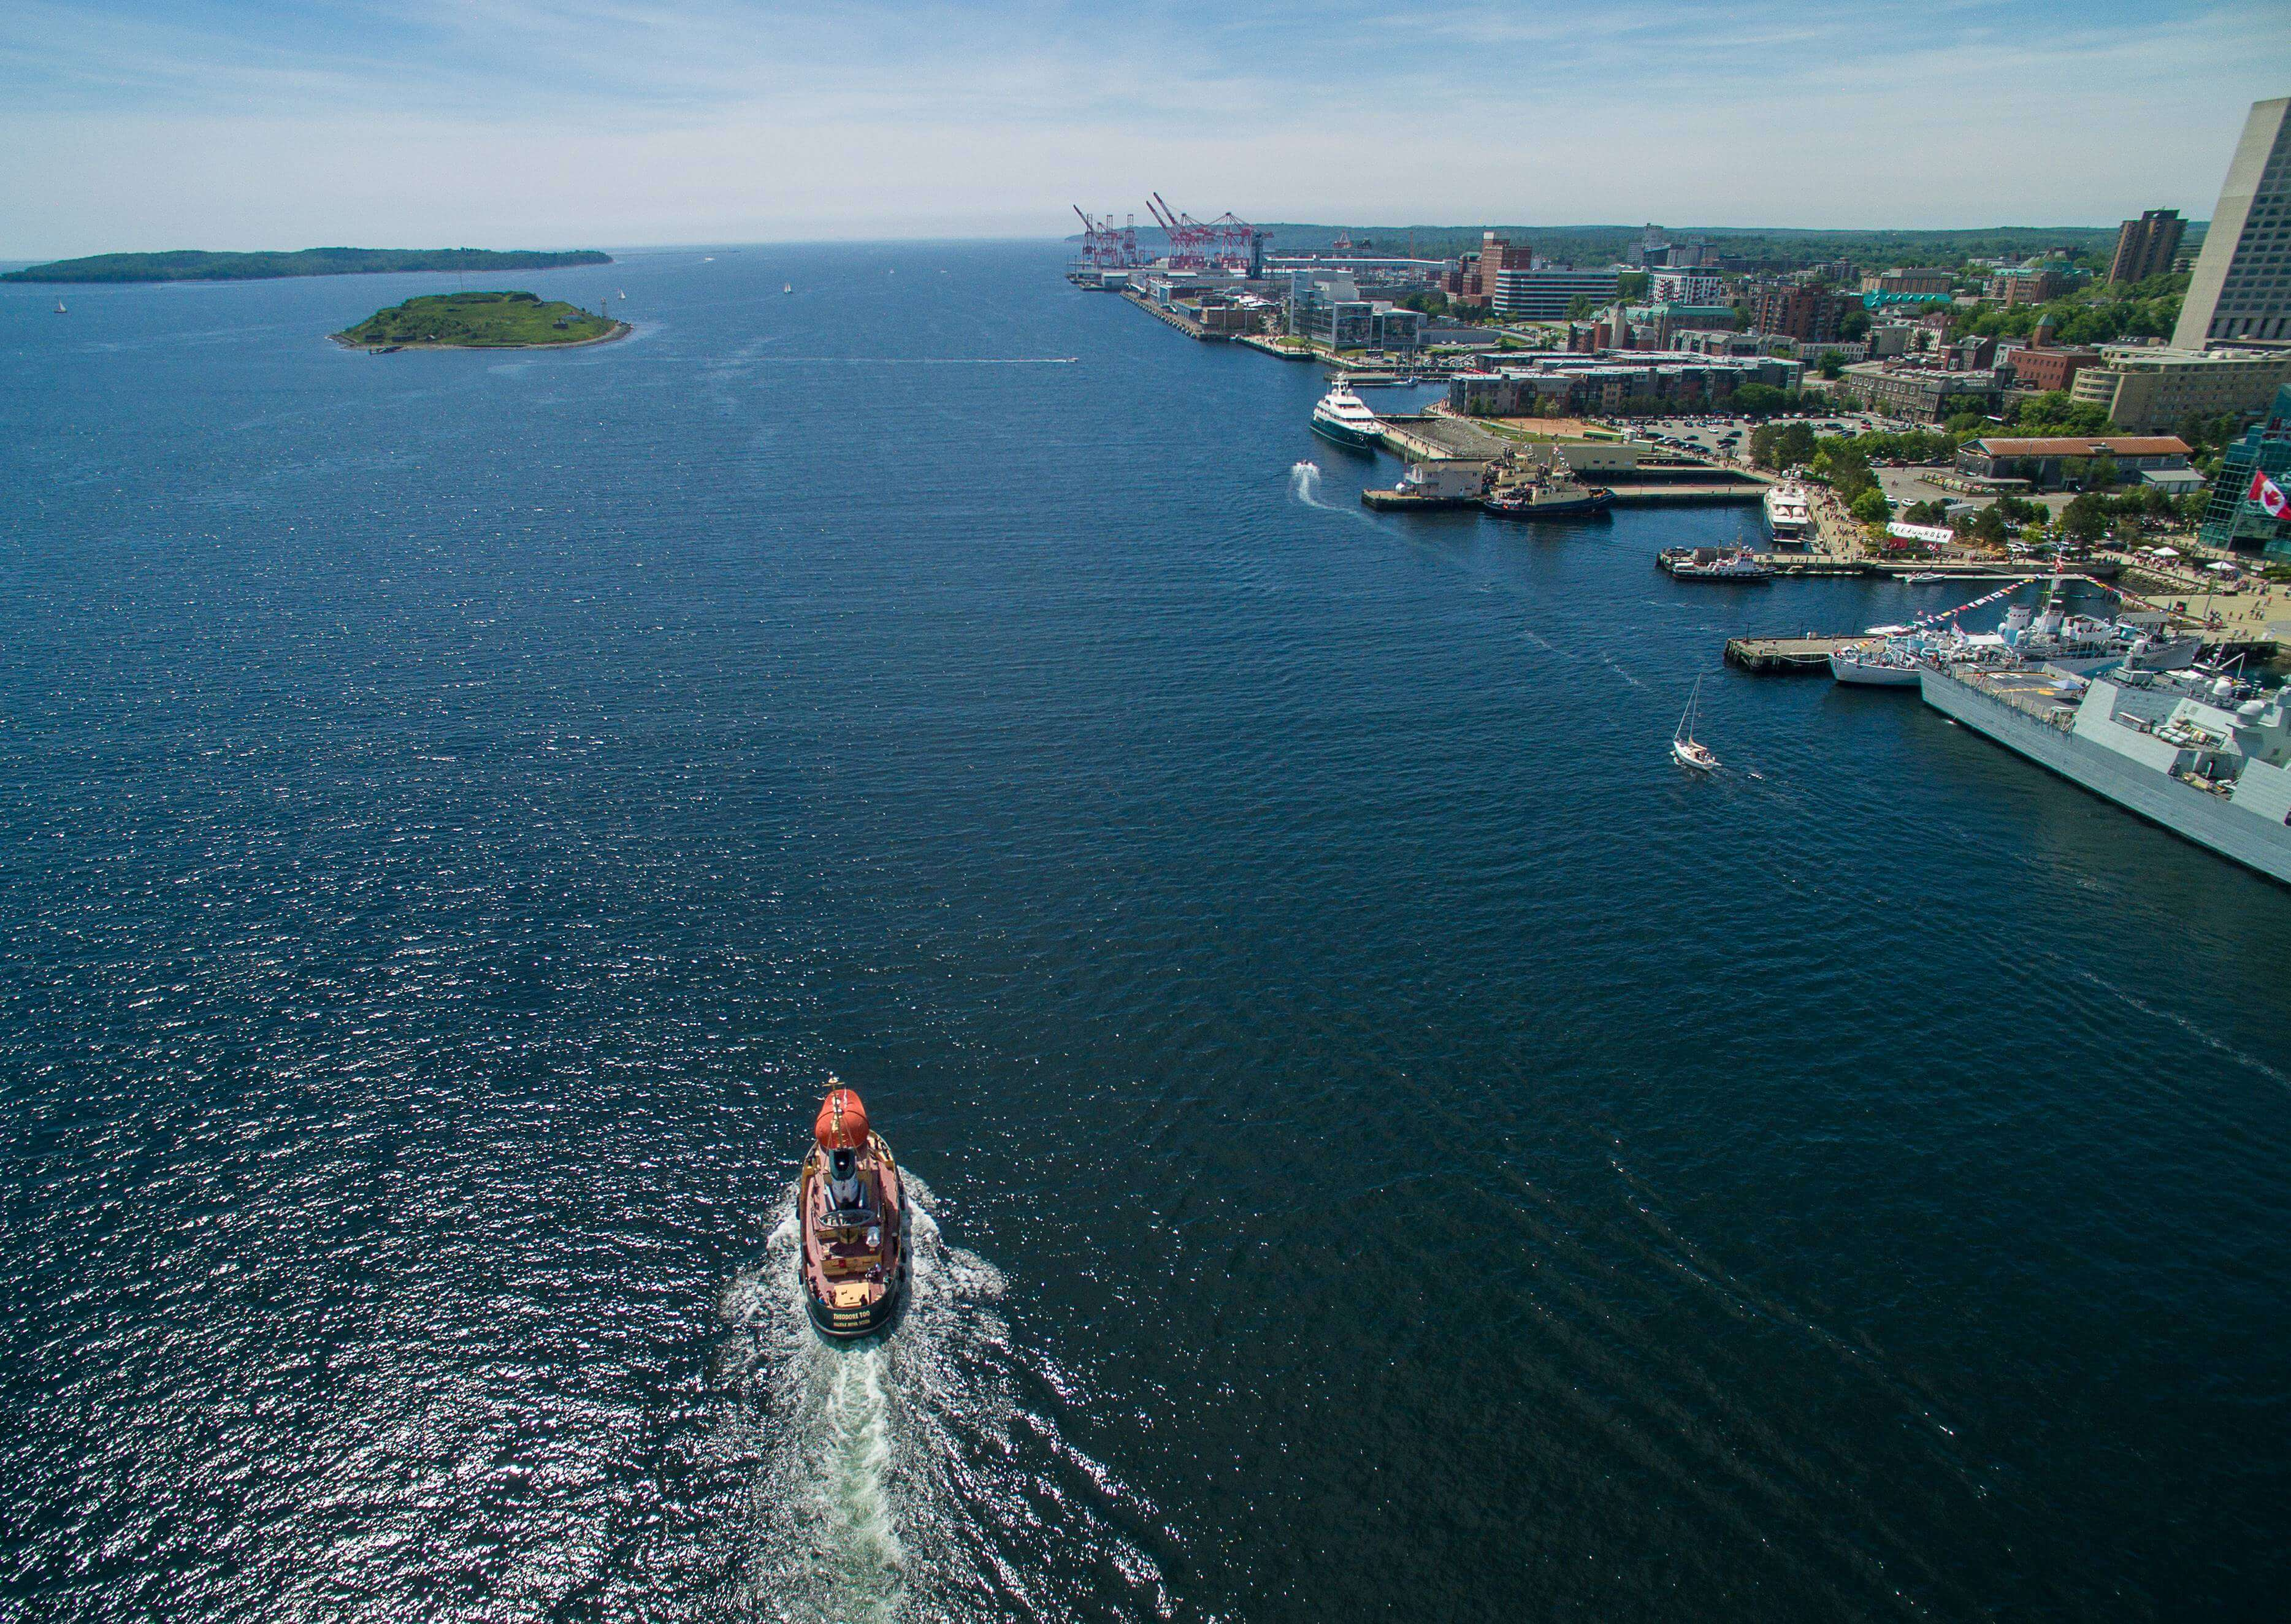 Theodore Tugboat in Halifax Harbour - High Resolution